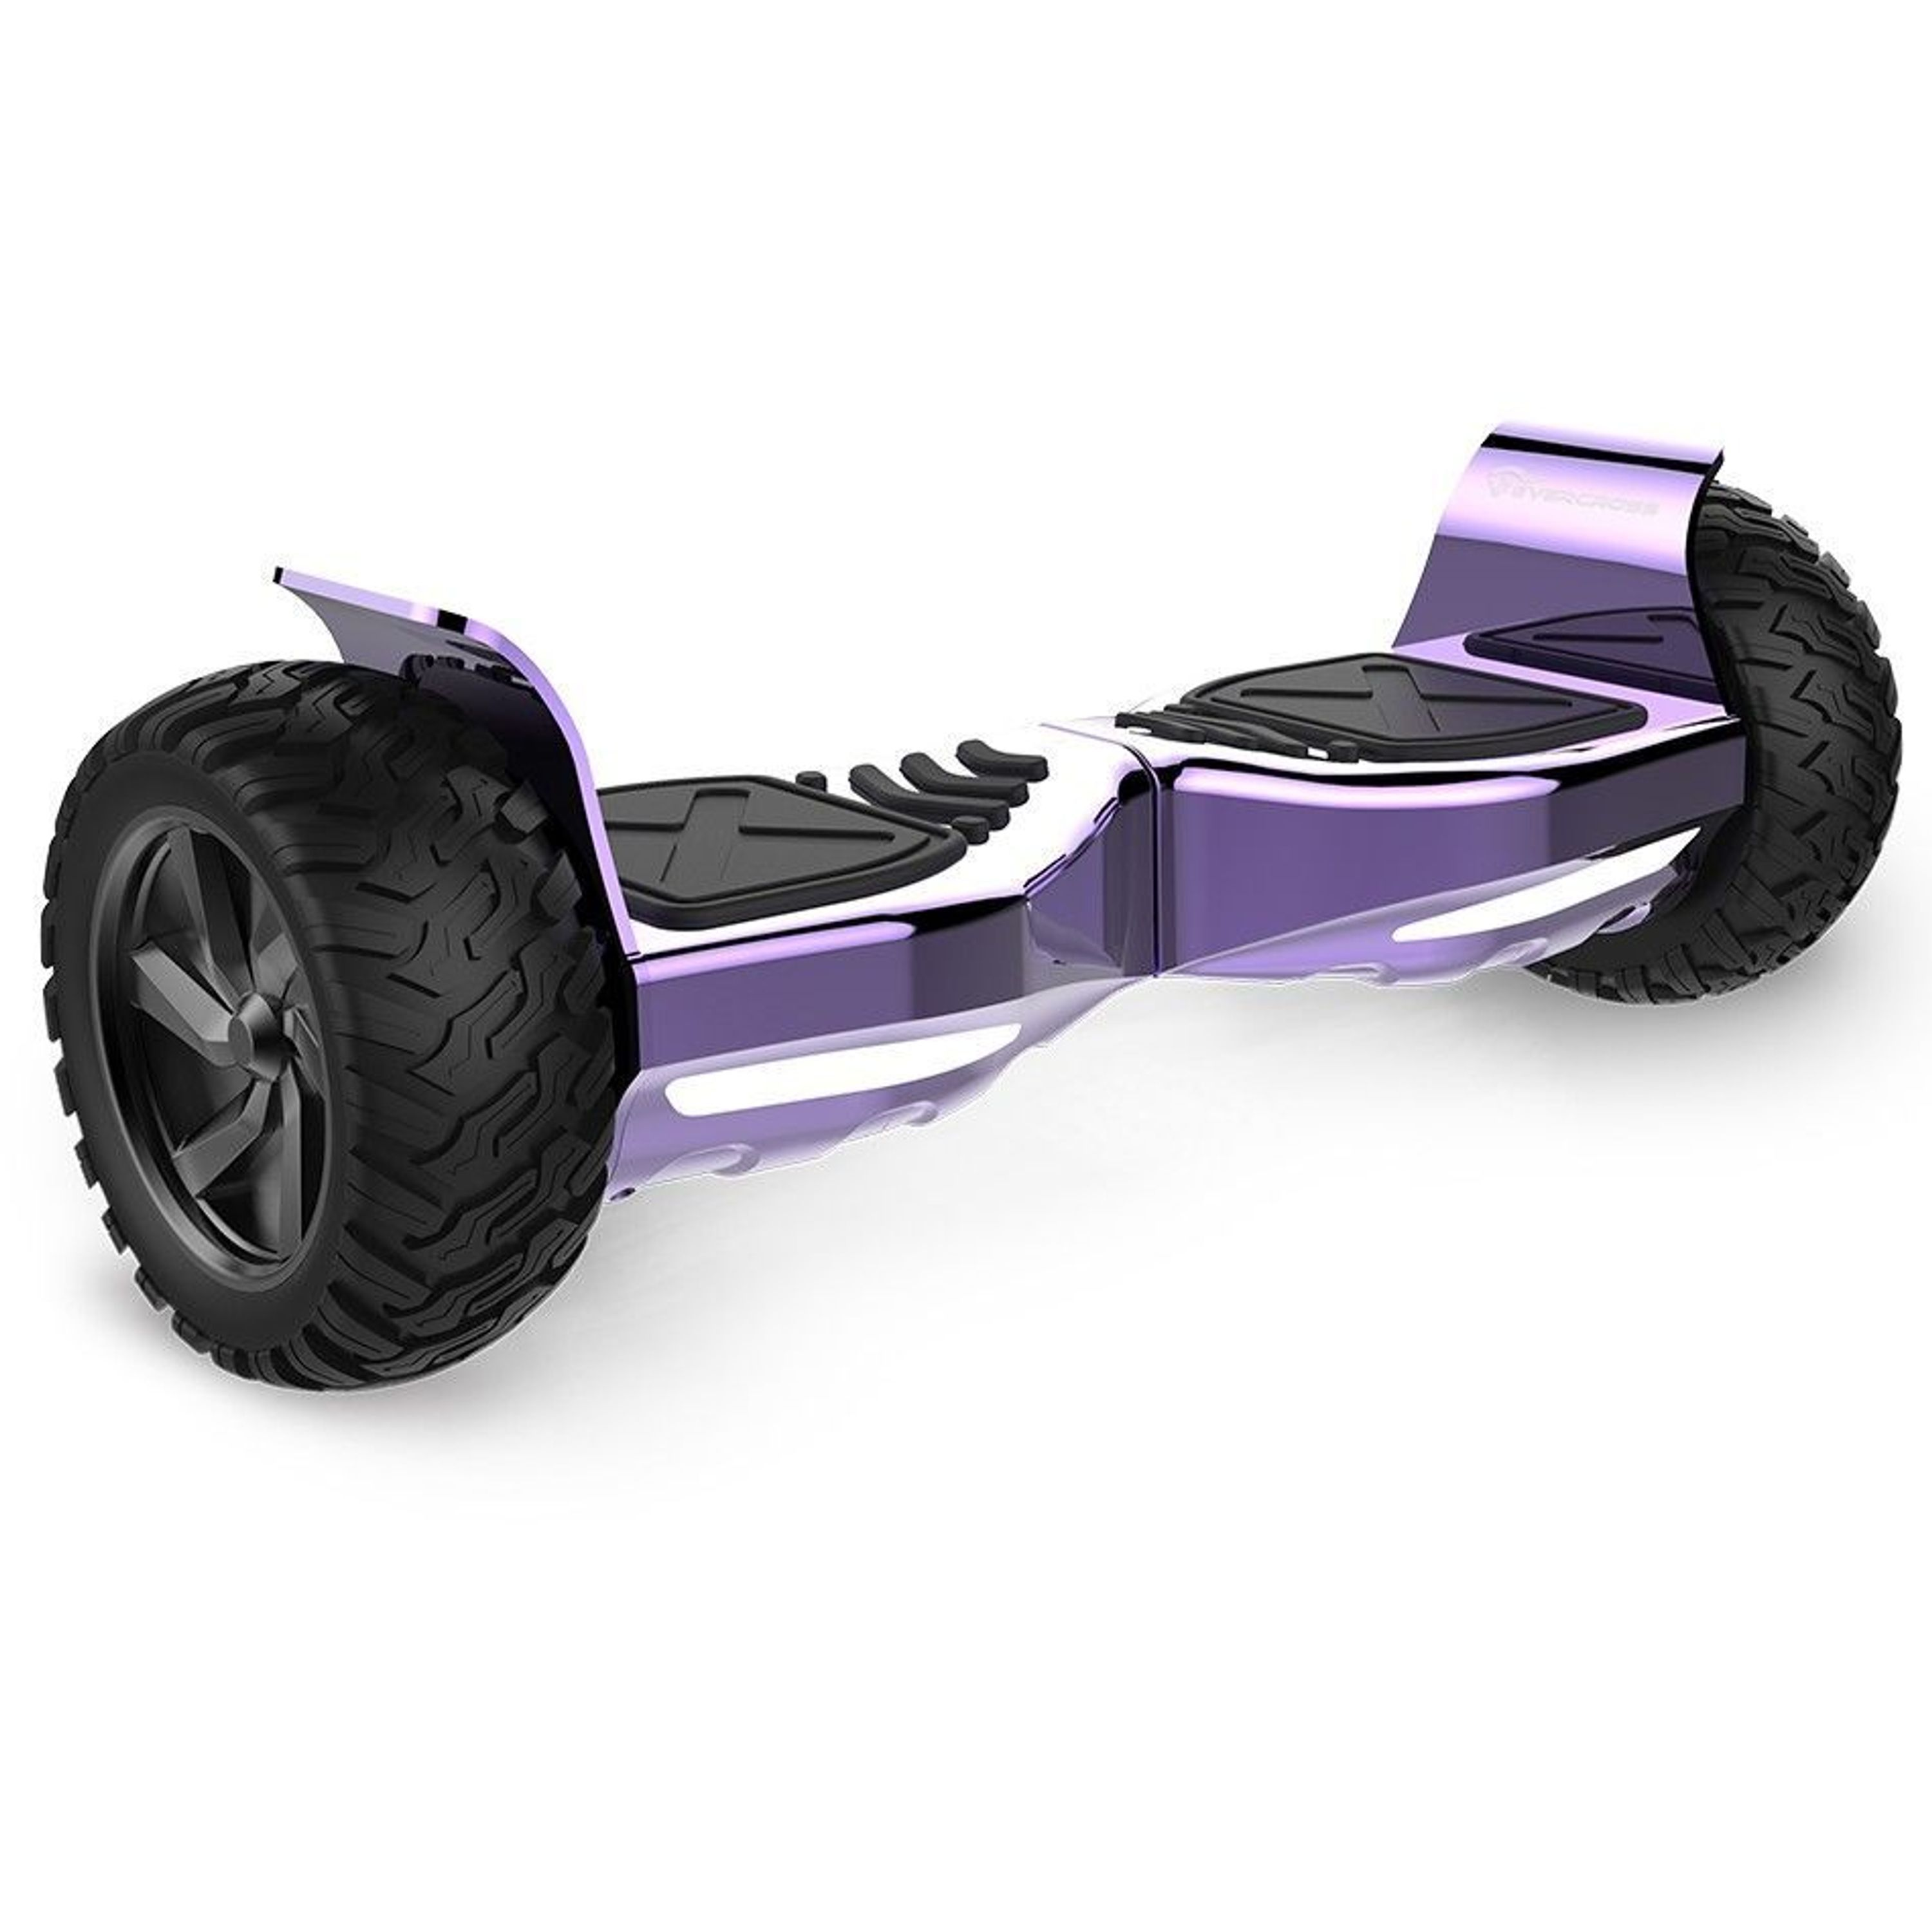 evercross challenger hoverboard suv camouflage app funktion 8 5 zoll 800 watt kaufen bei. Black Bedroom Furniture Sets. Home Design Ideas